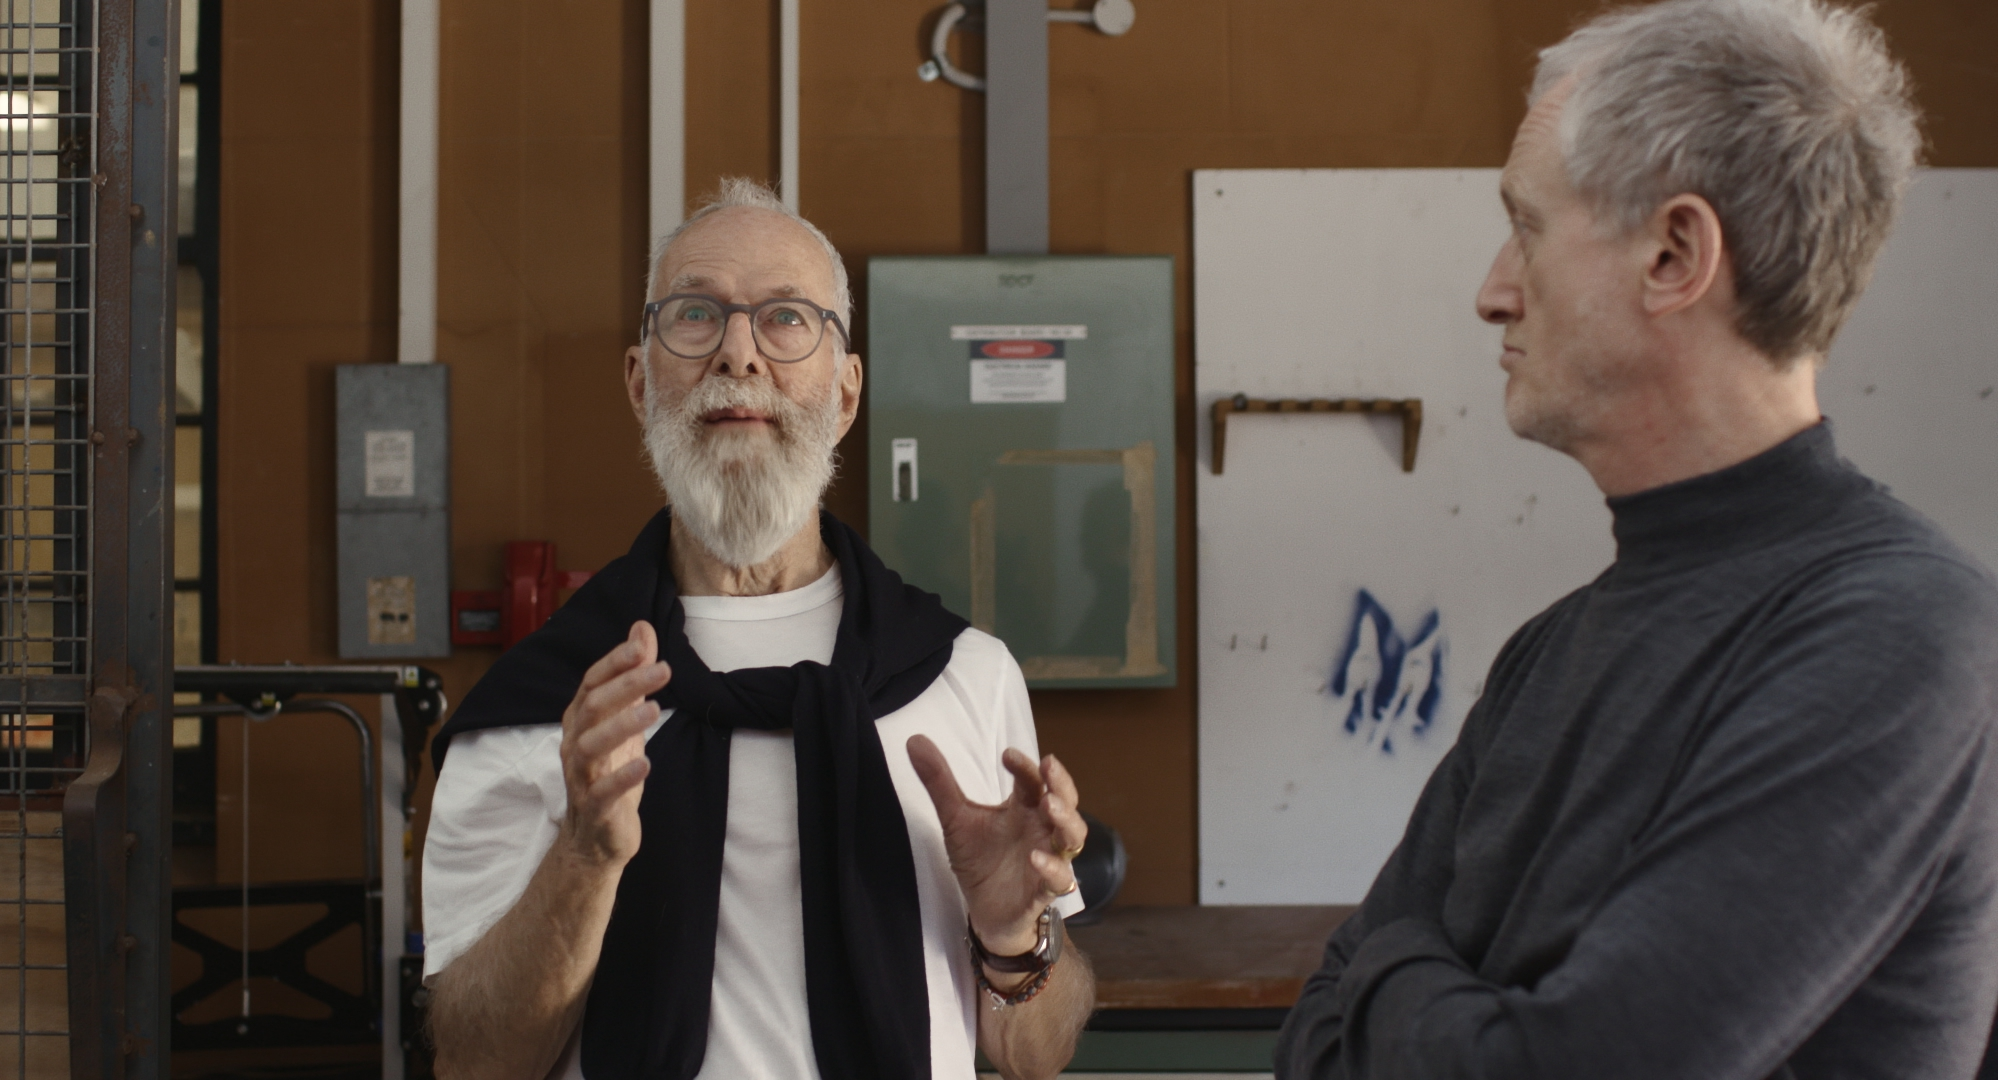 John Kaldor AO and Michael Landy discuss the design of the 50th exhibition at the Art Gallery of NSW